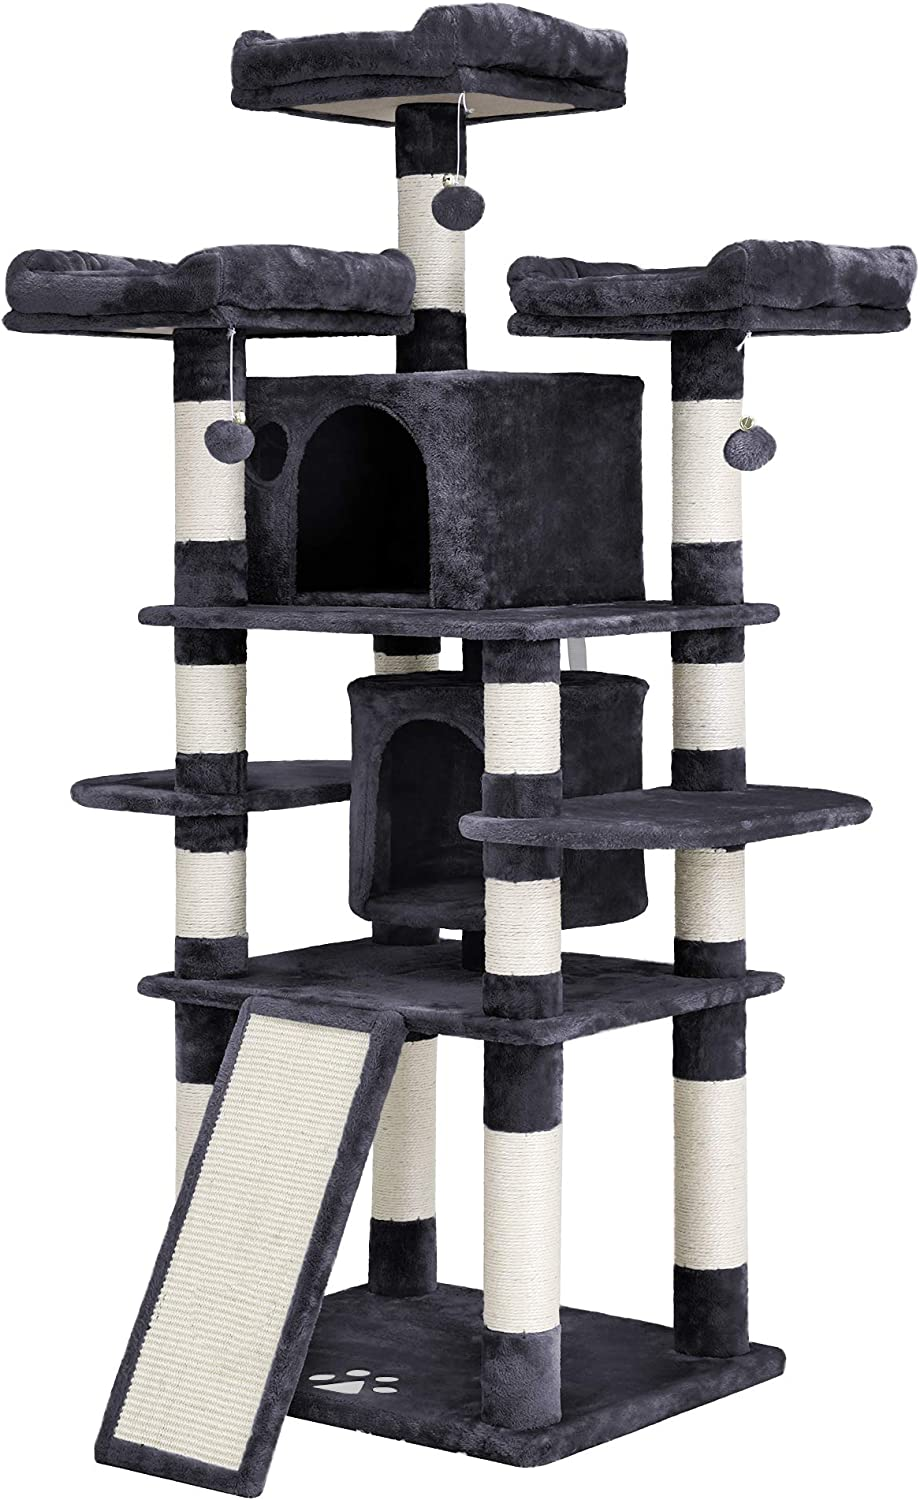 2. FEANDREA 67 Inches Multi-Level Cat Tree for Large Cats